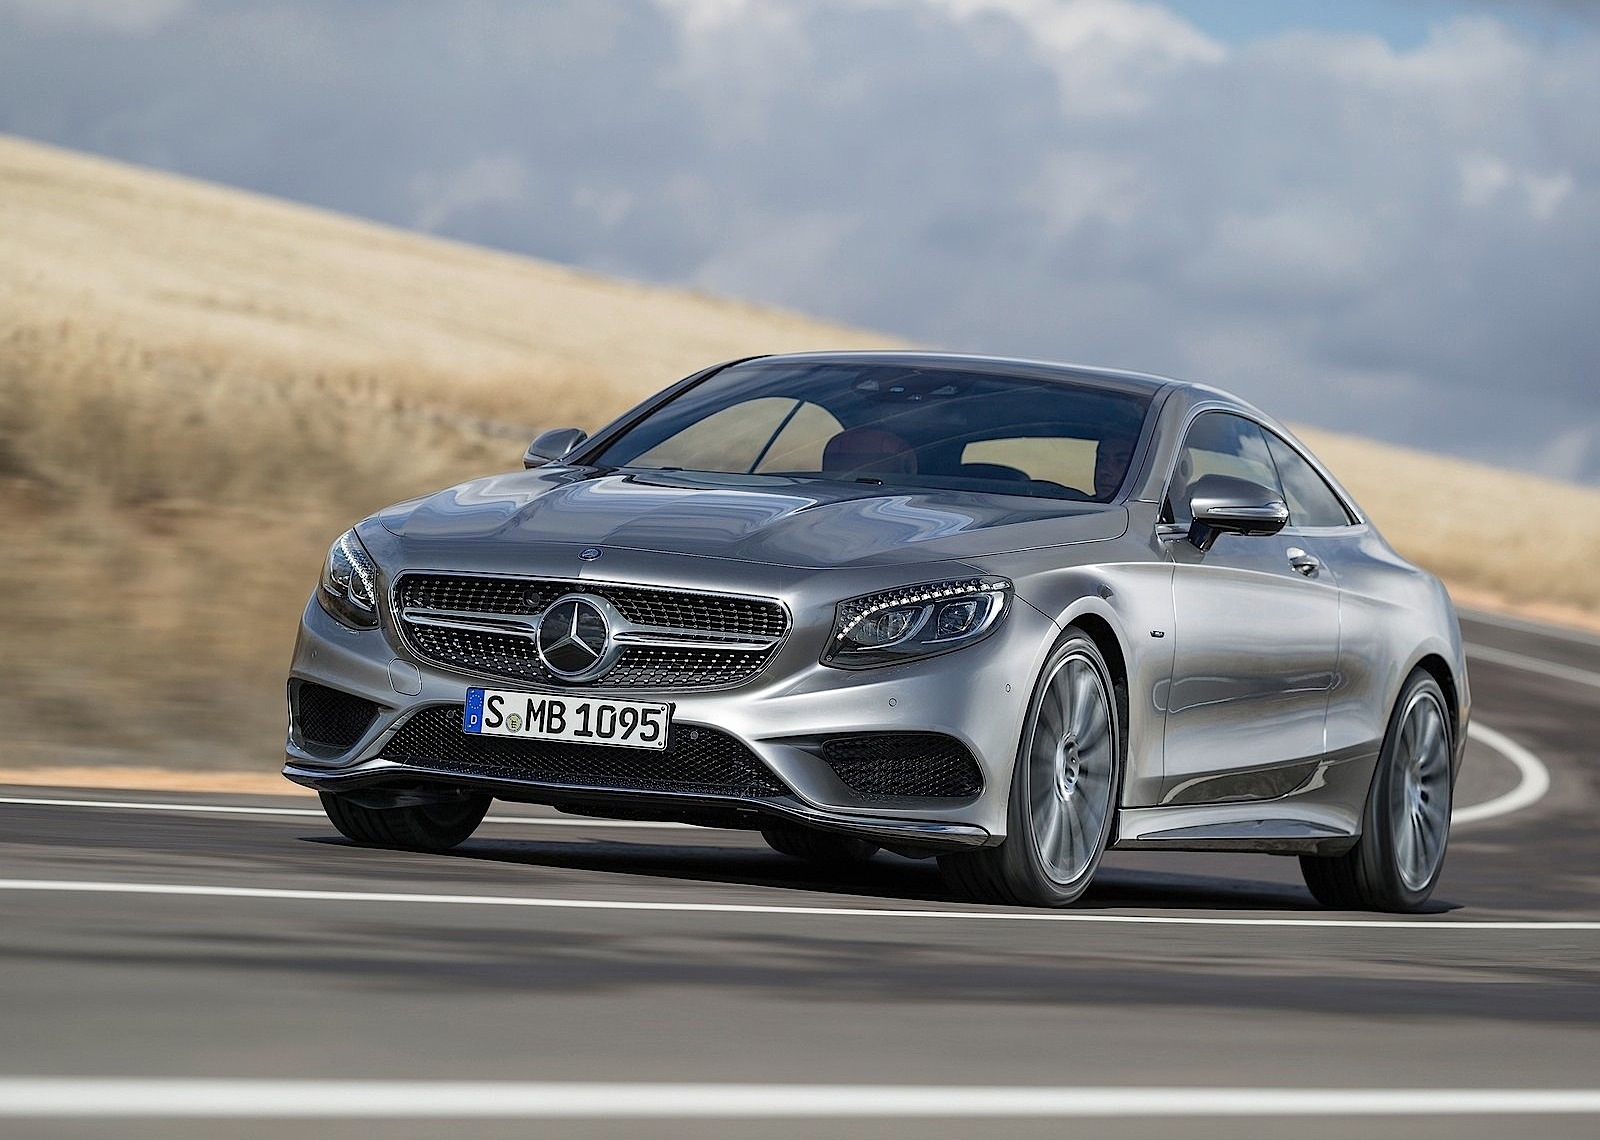 Mercedes Benz S 63 Amg Coupe 2014 2015 2016 2017